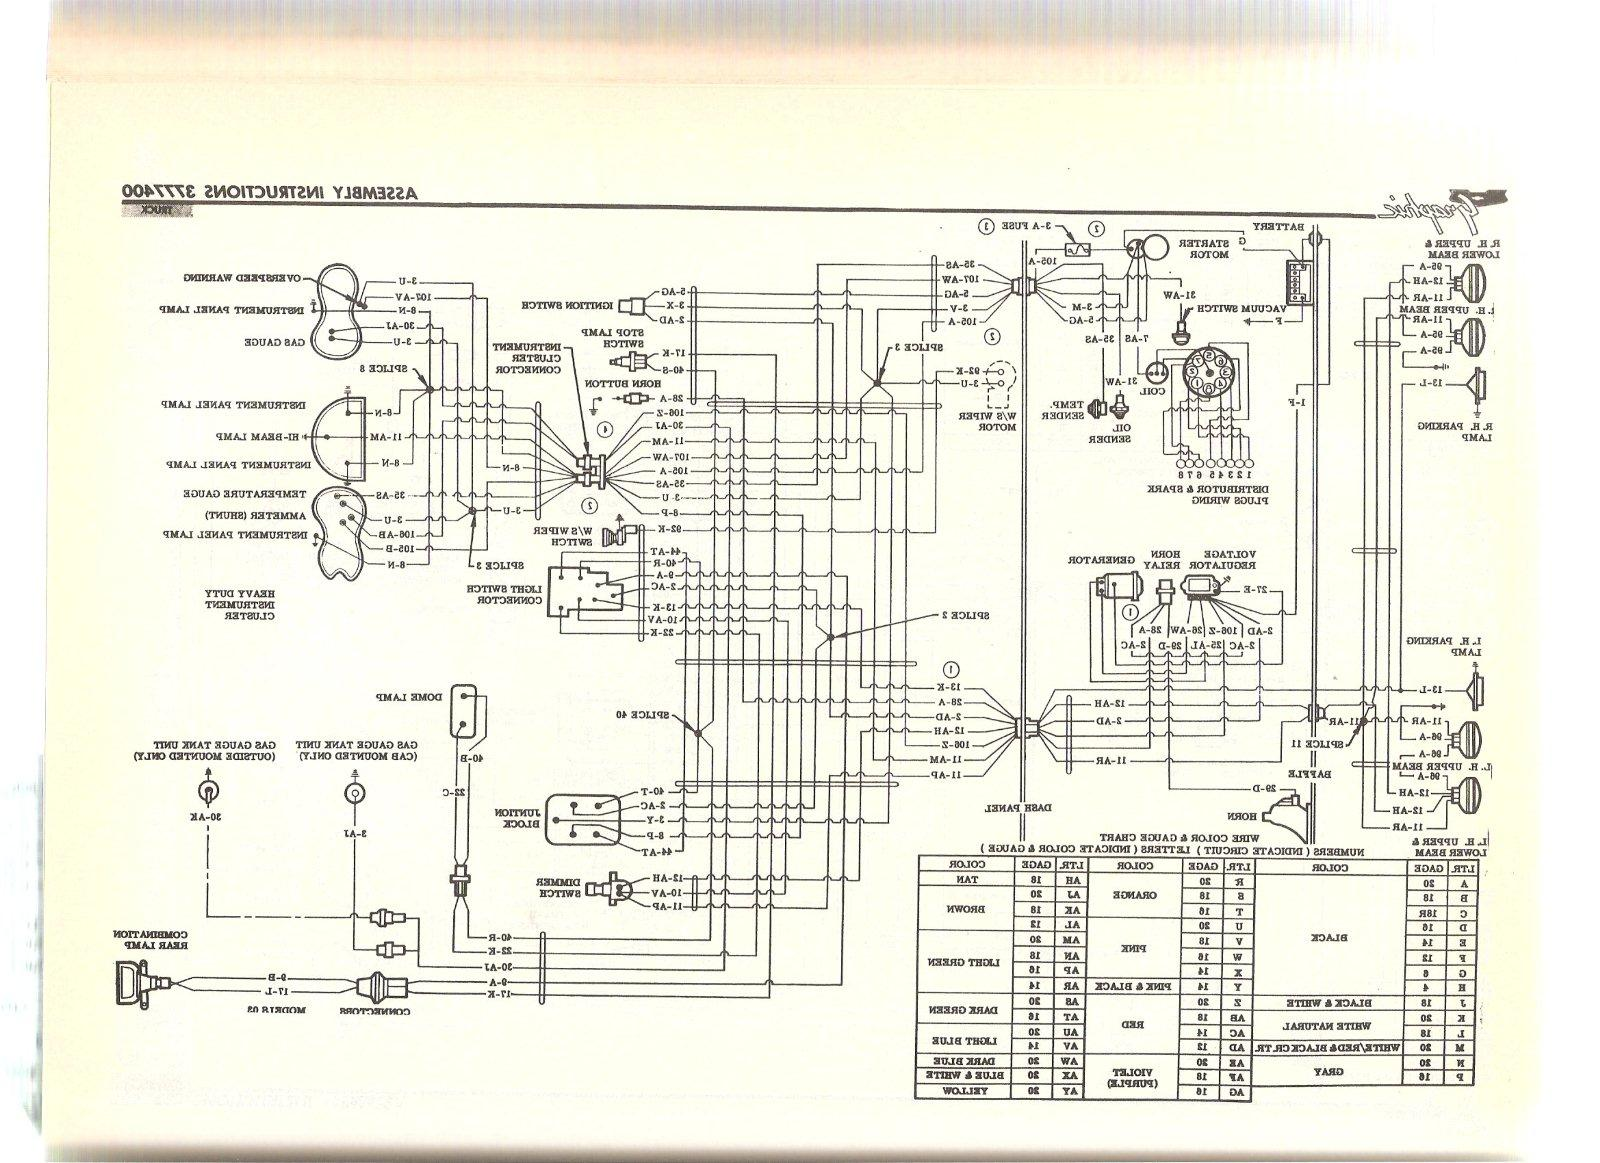 Wiring Diagram The on Palfinger Wiring Diagrams